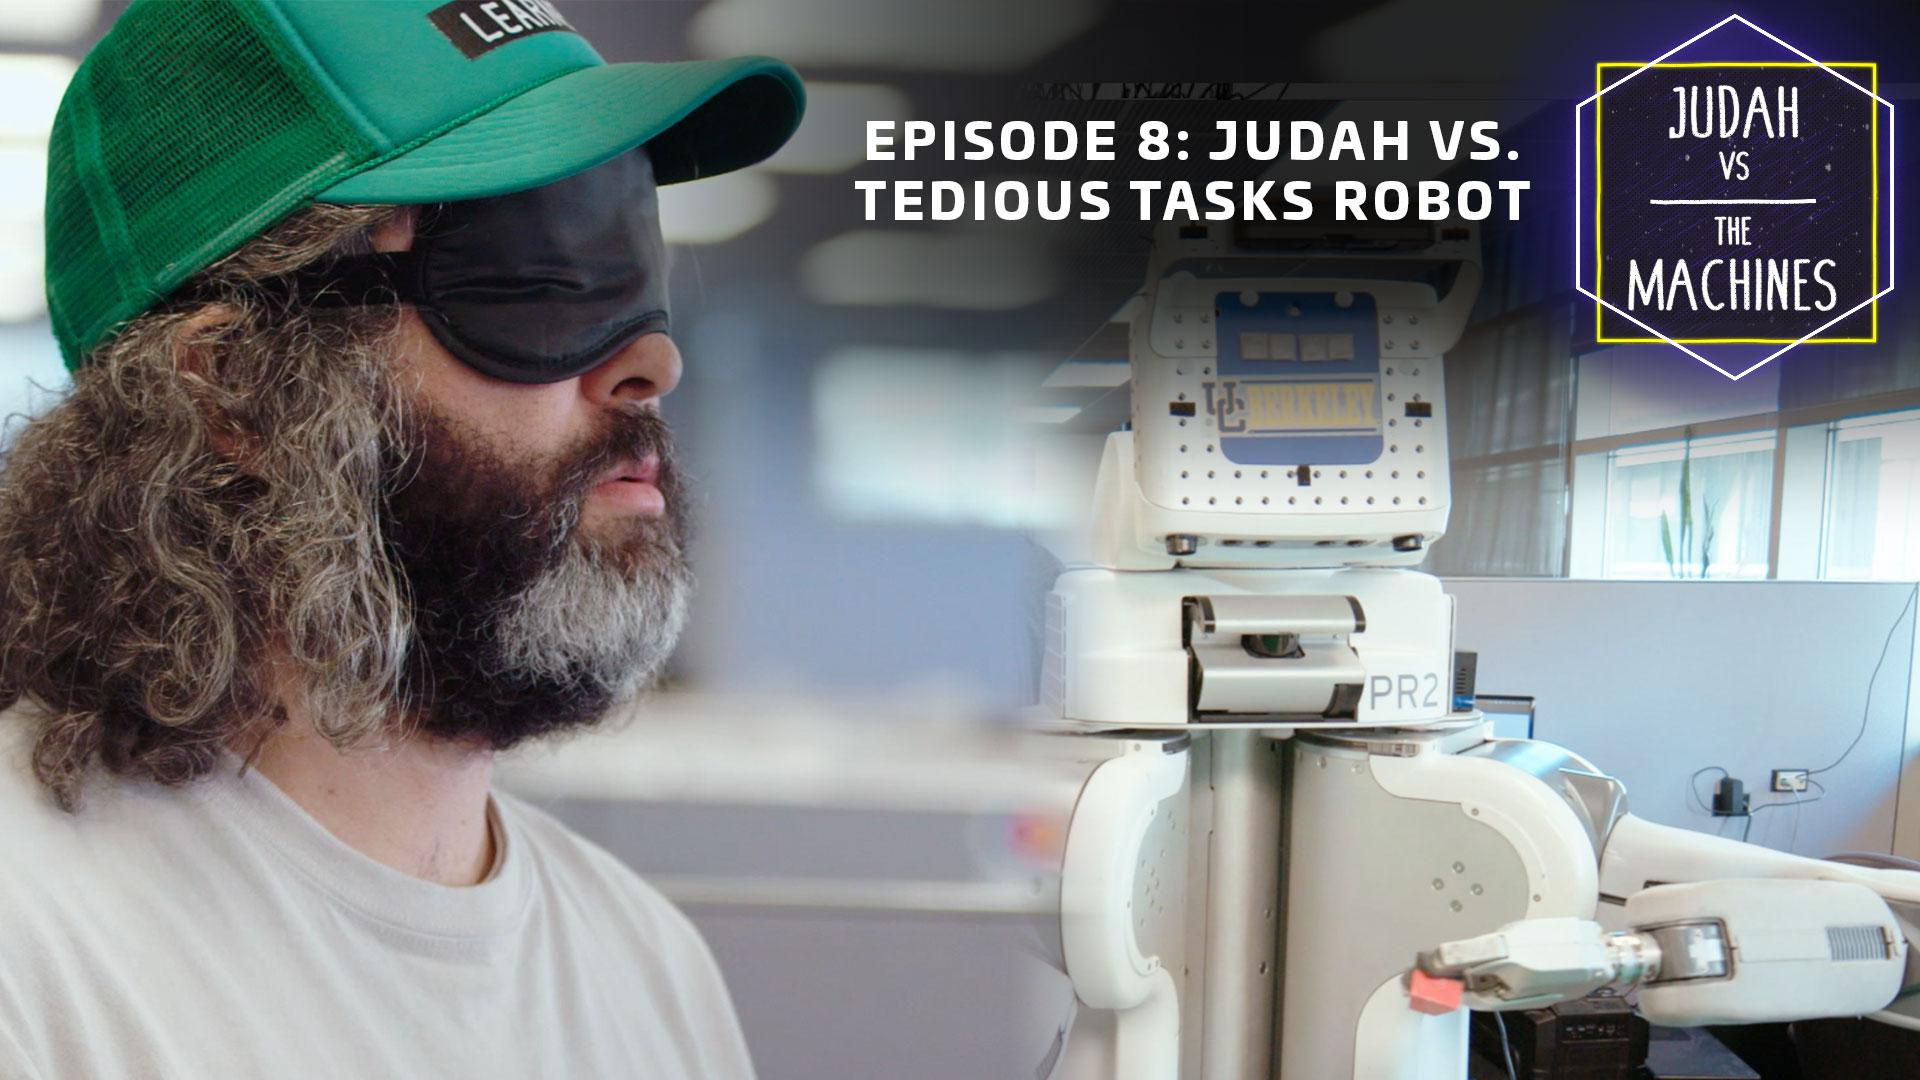 Judah vs tedious tasks robot